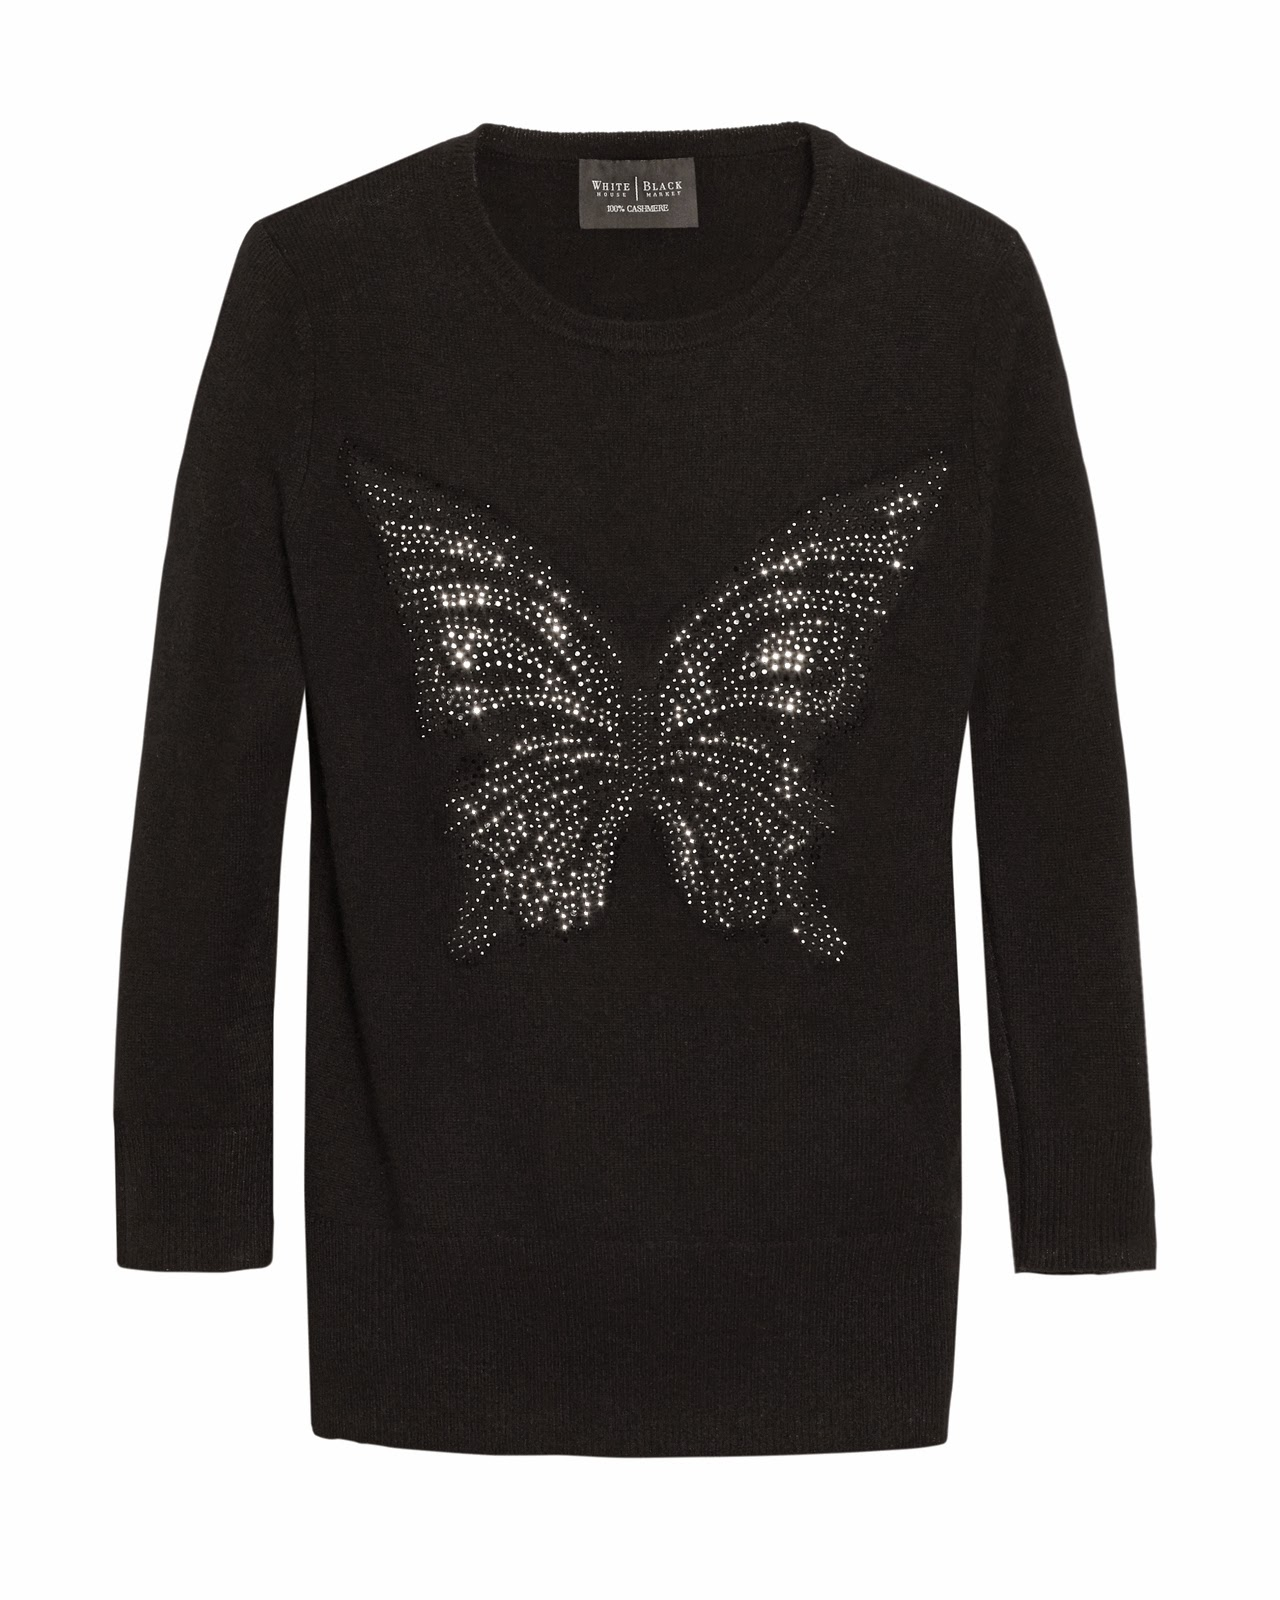 Butterfly Embellished Black Tee